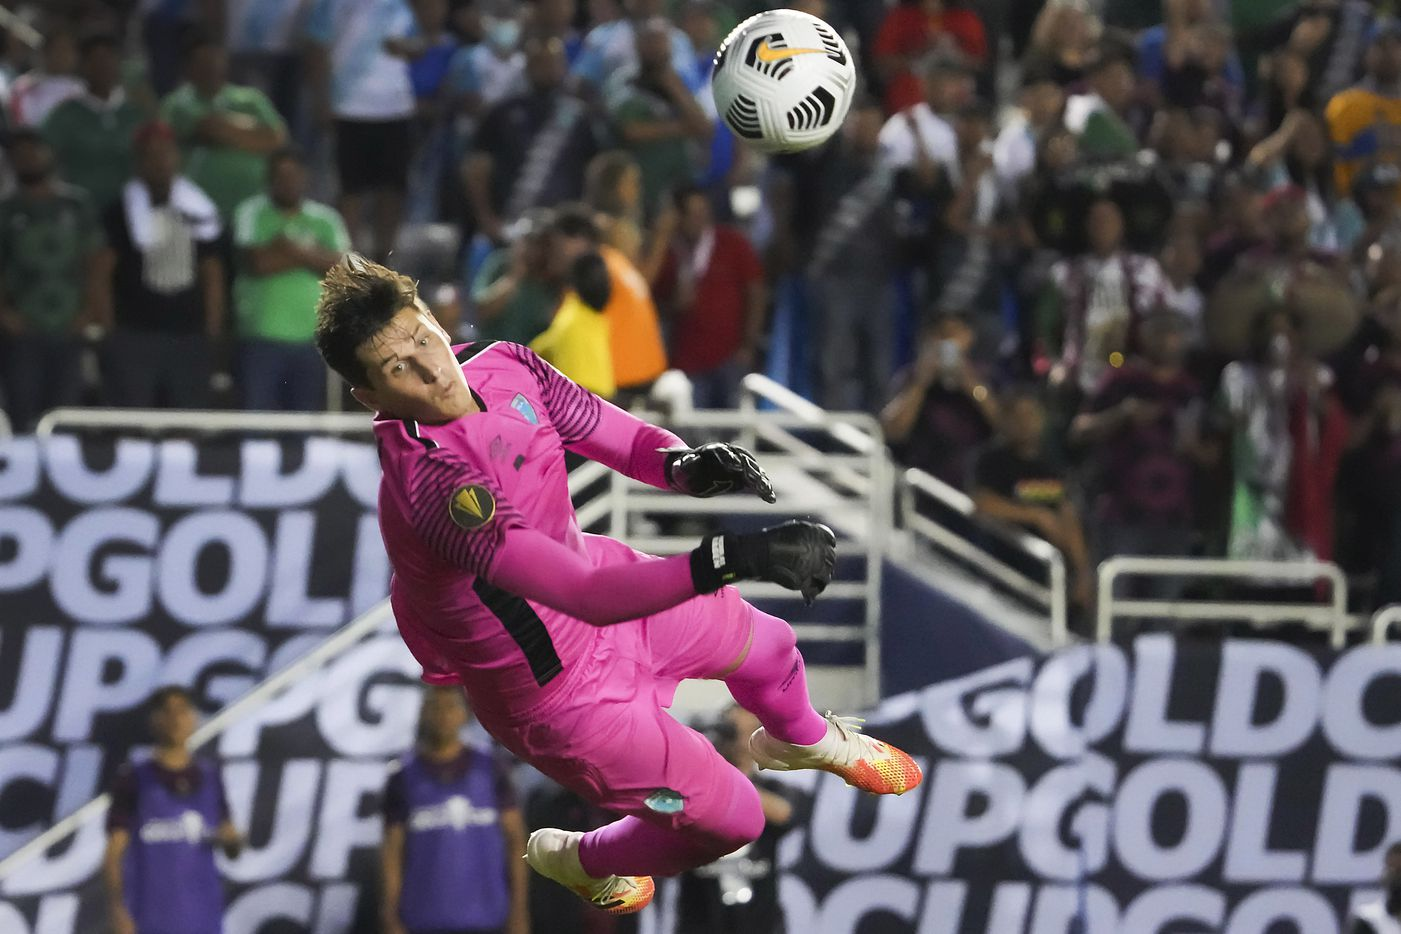 Guatemala goalkeeper Nicholas Hagen dives to knock away a Mexico shot during the second half of a CONCACAF Gold Cup Group A soccer match at the Cotton Bowl on Wednesday, July 14, 2021, in Dallas.